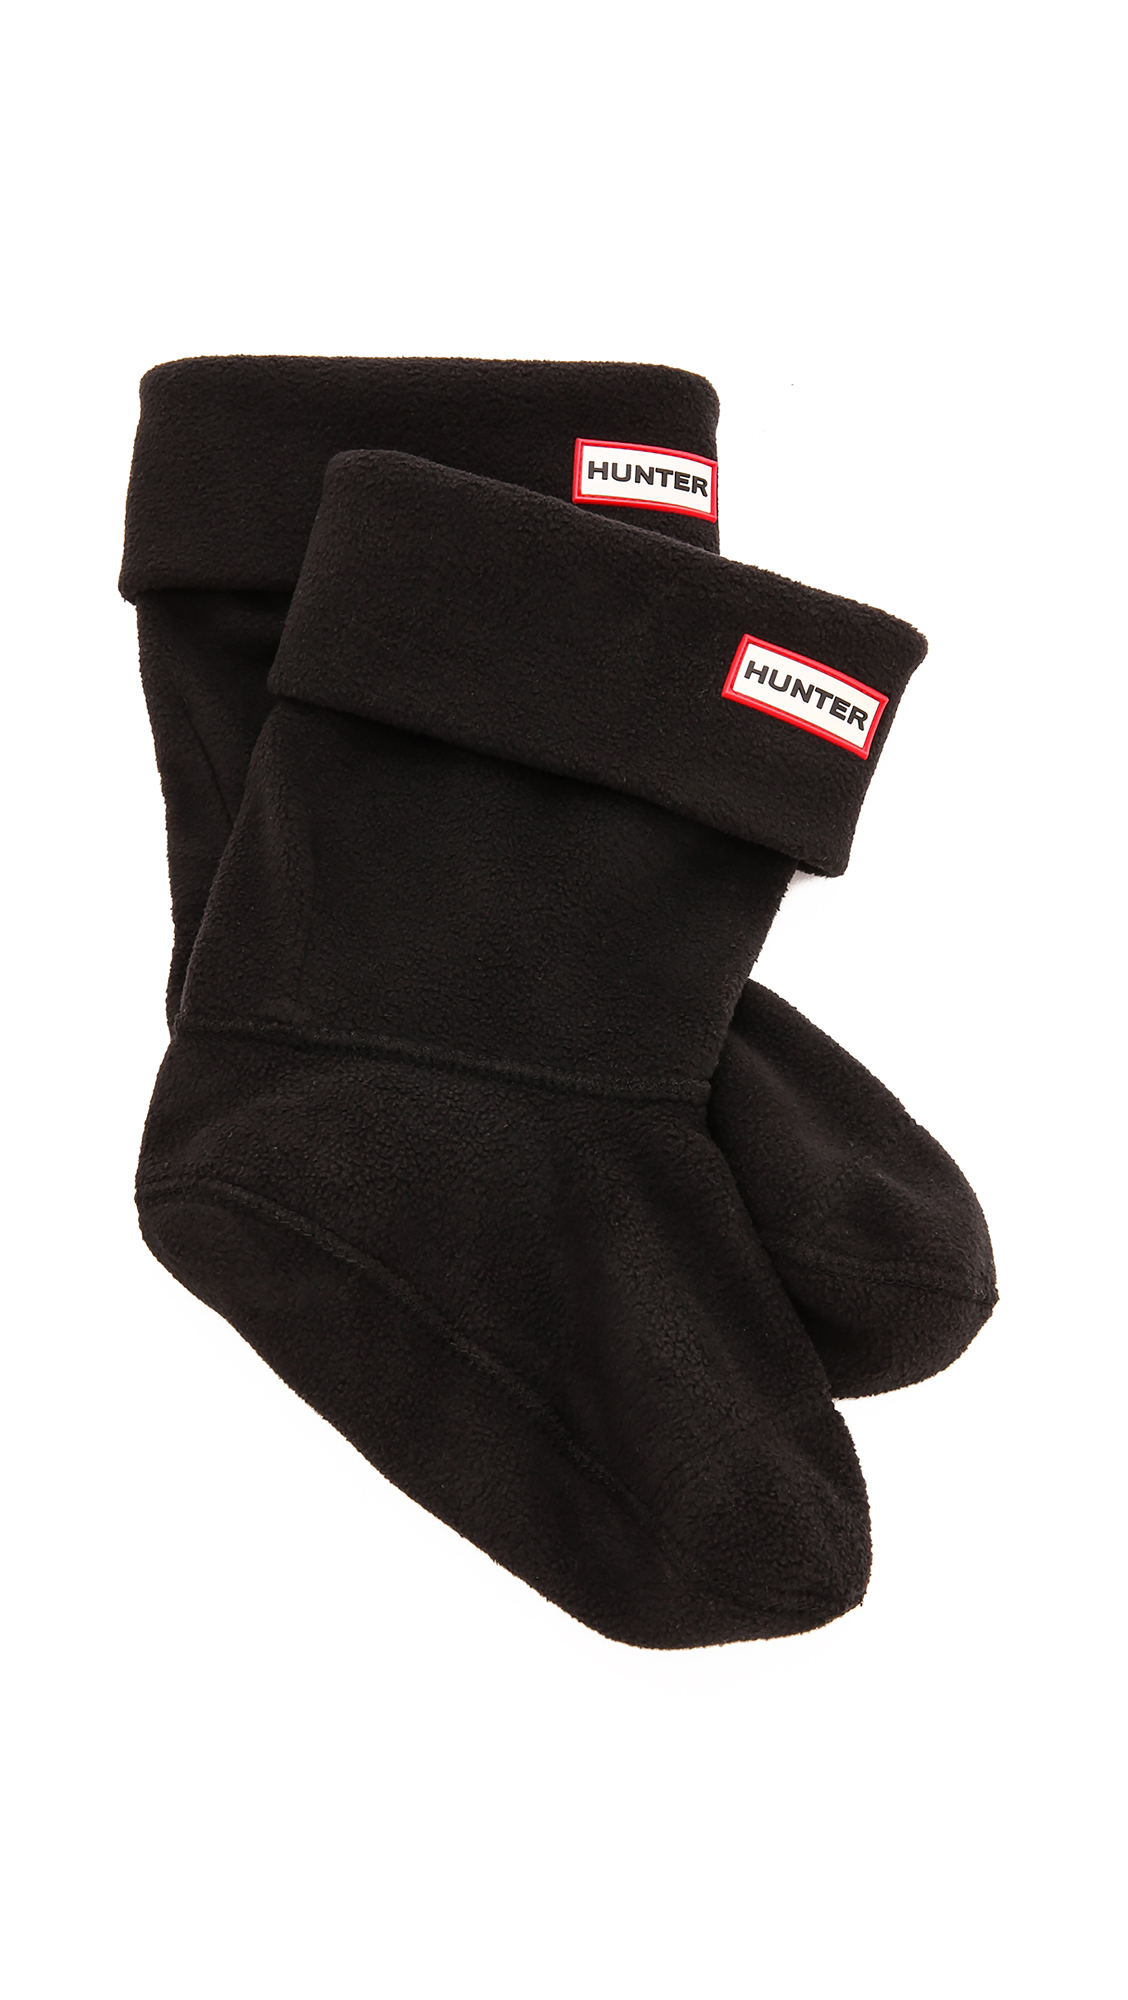 Hunter Boots Short Boot Socks - Black